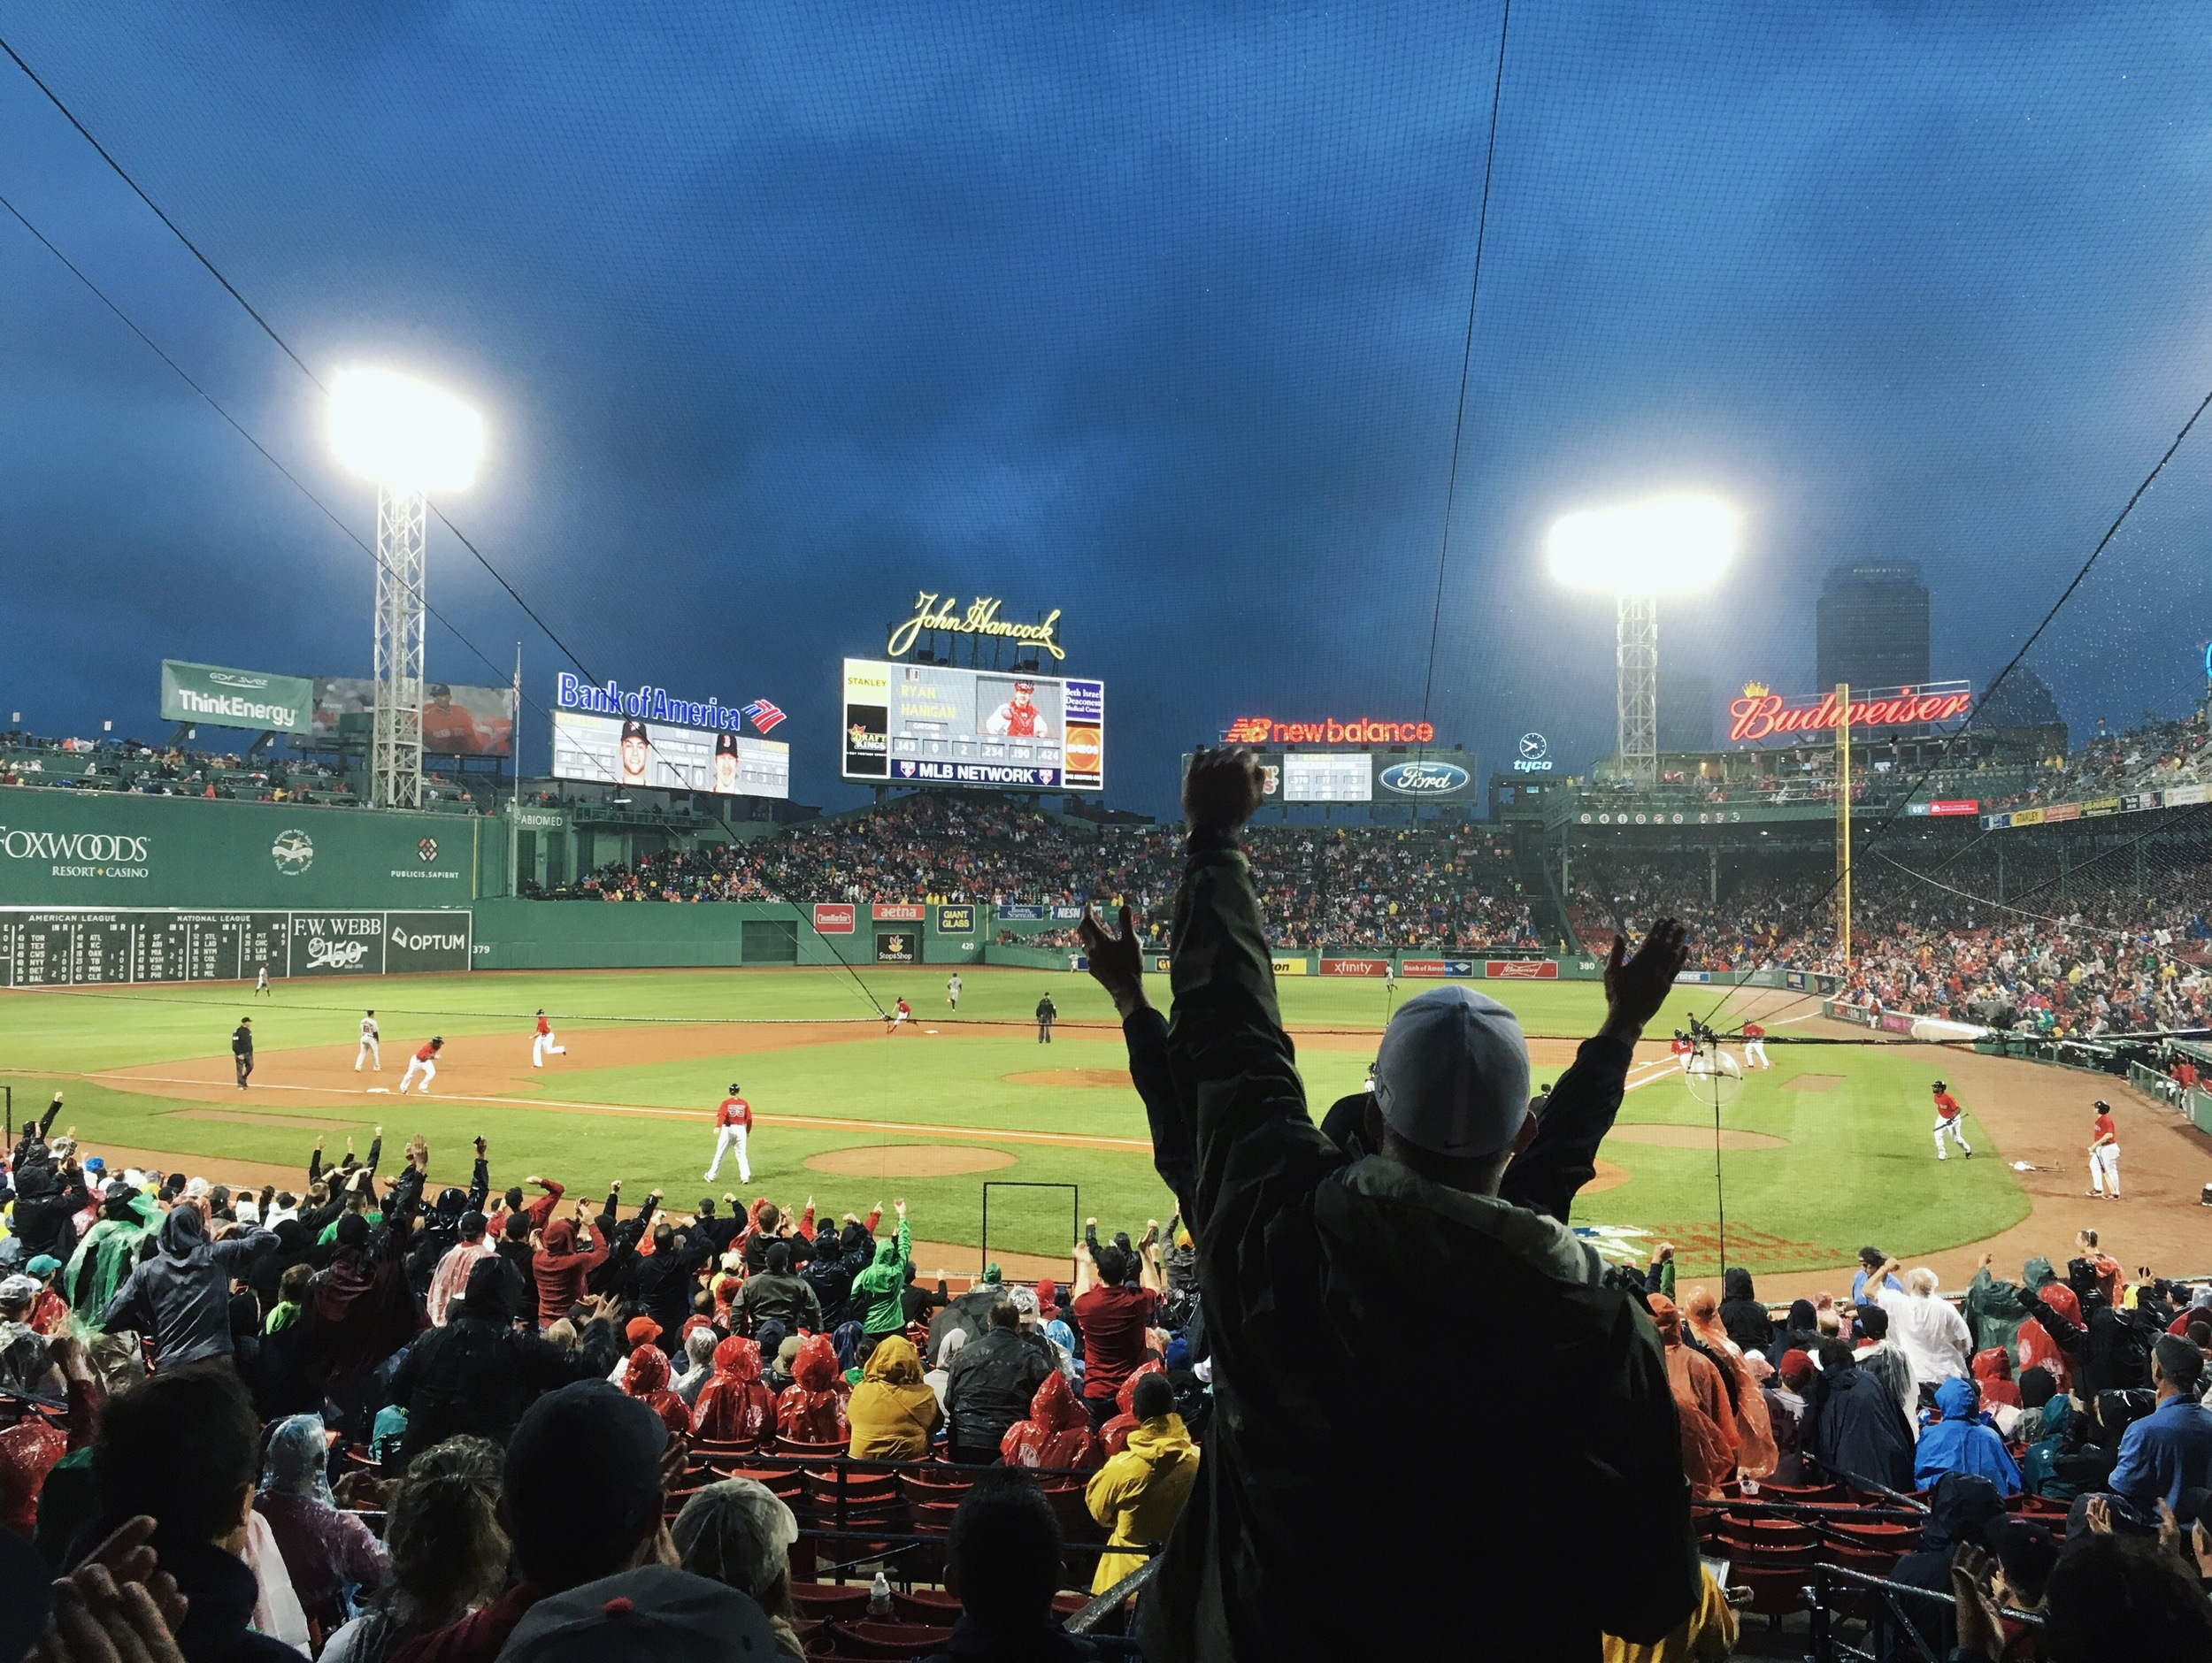 The game started promisingly, with the Sox scoring five runs in the second inning.